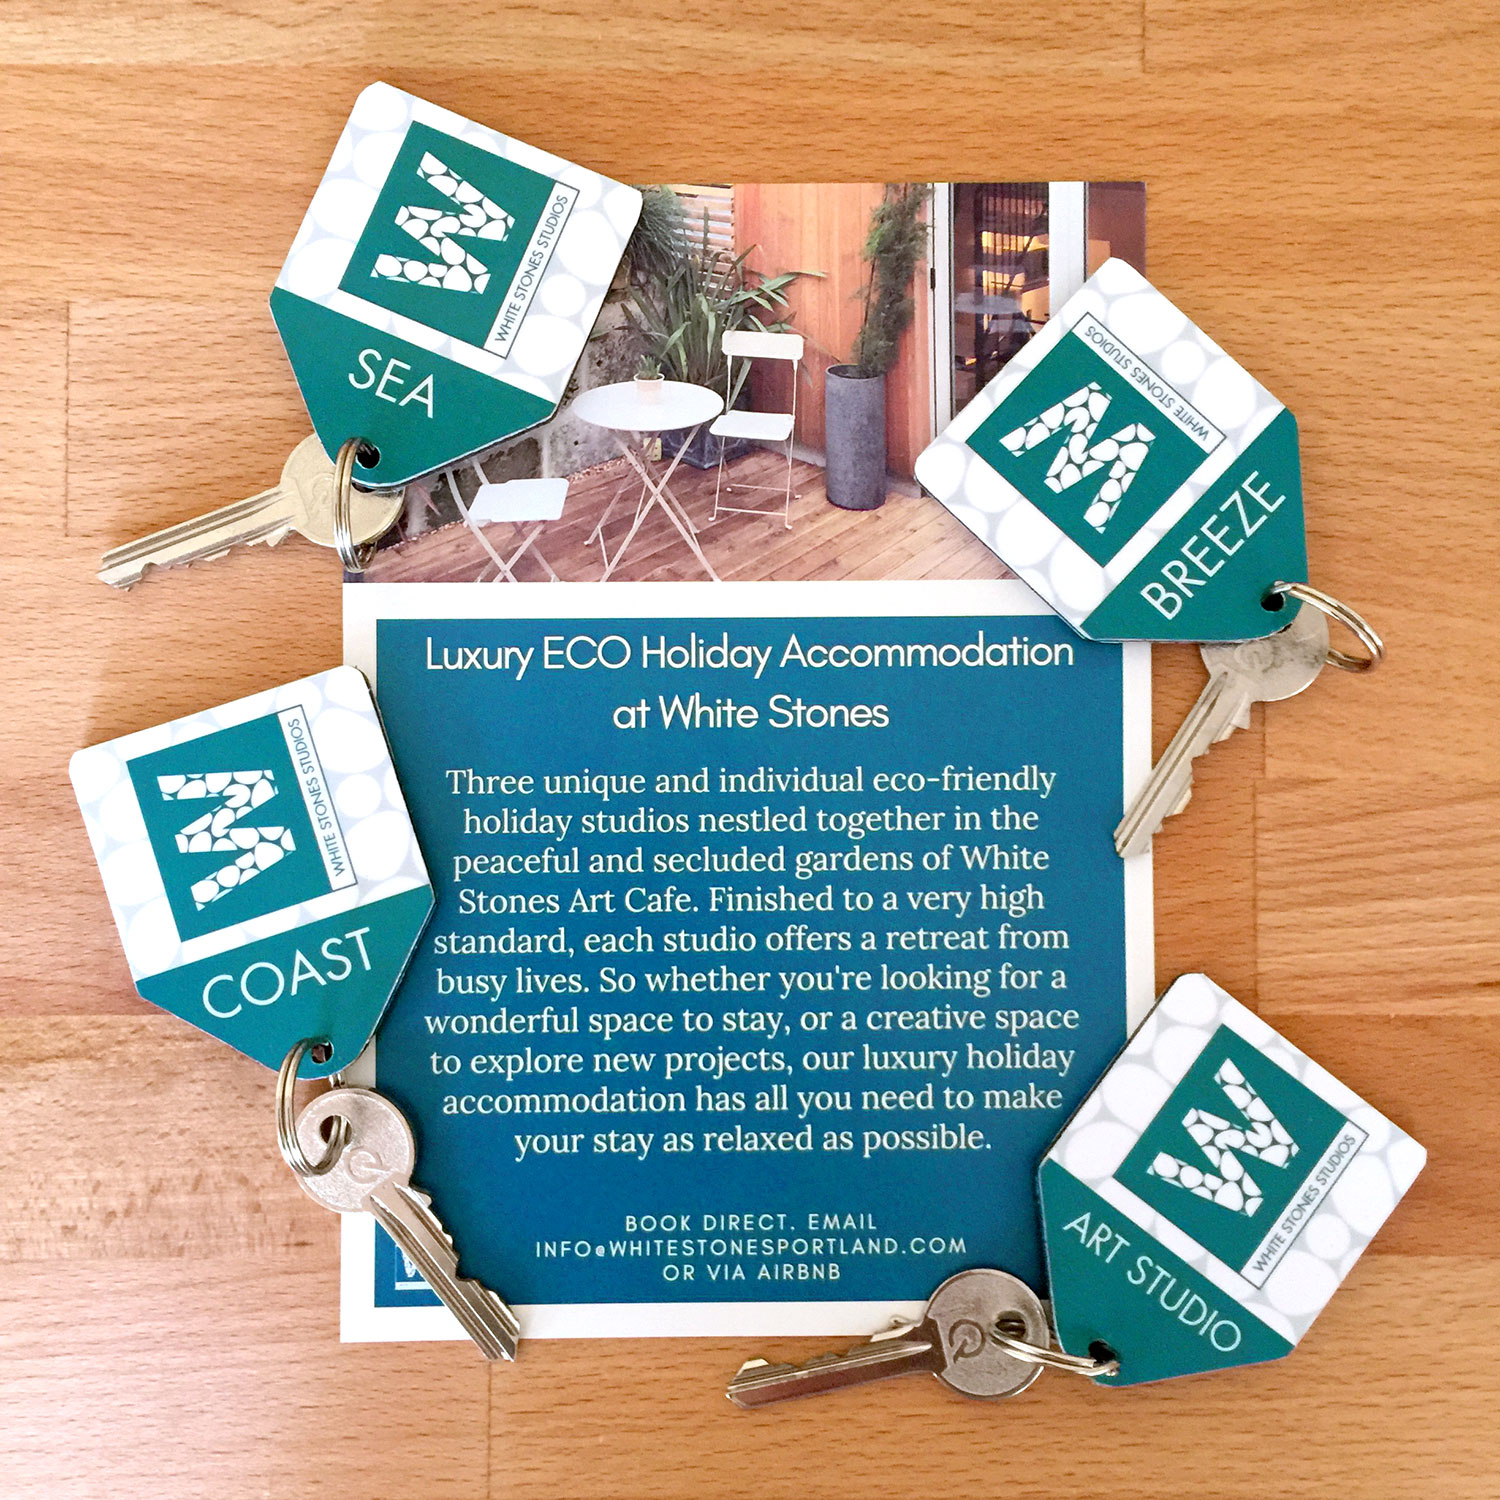 Key Tags are a great way to raise brand awareness.